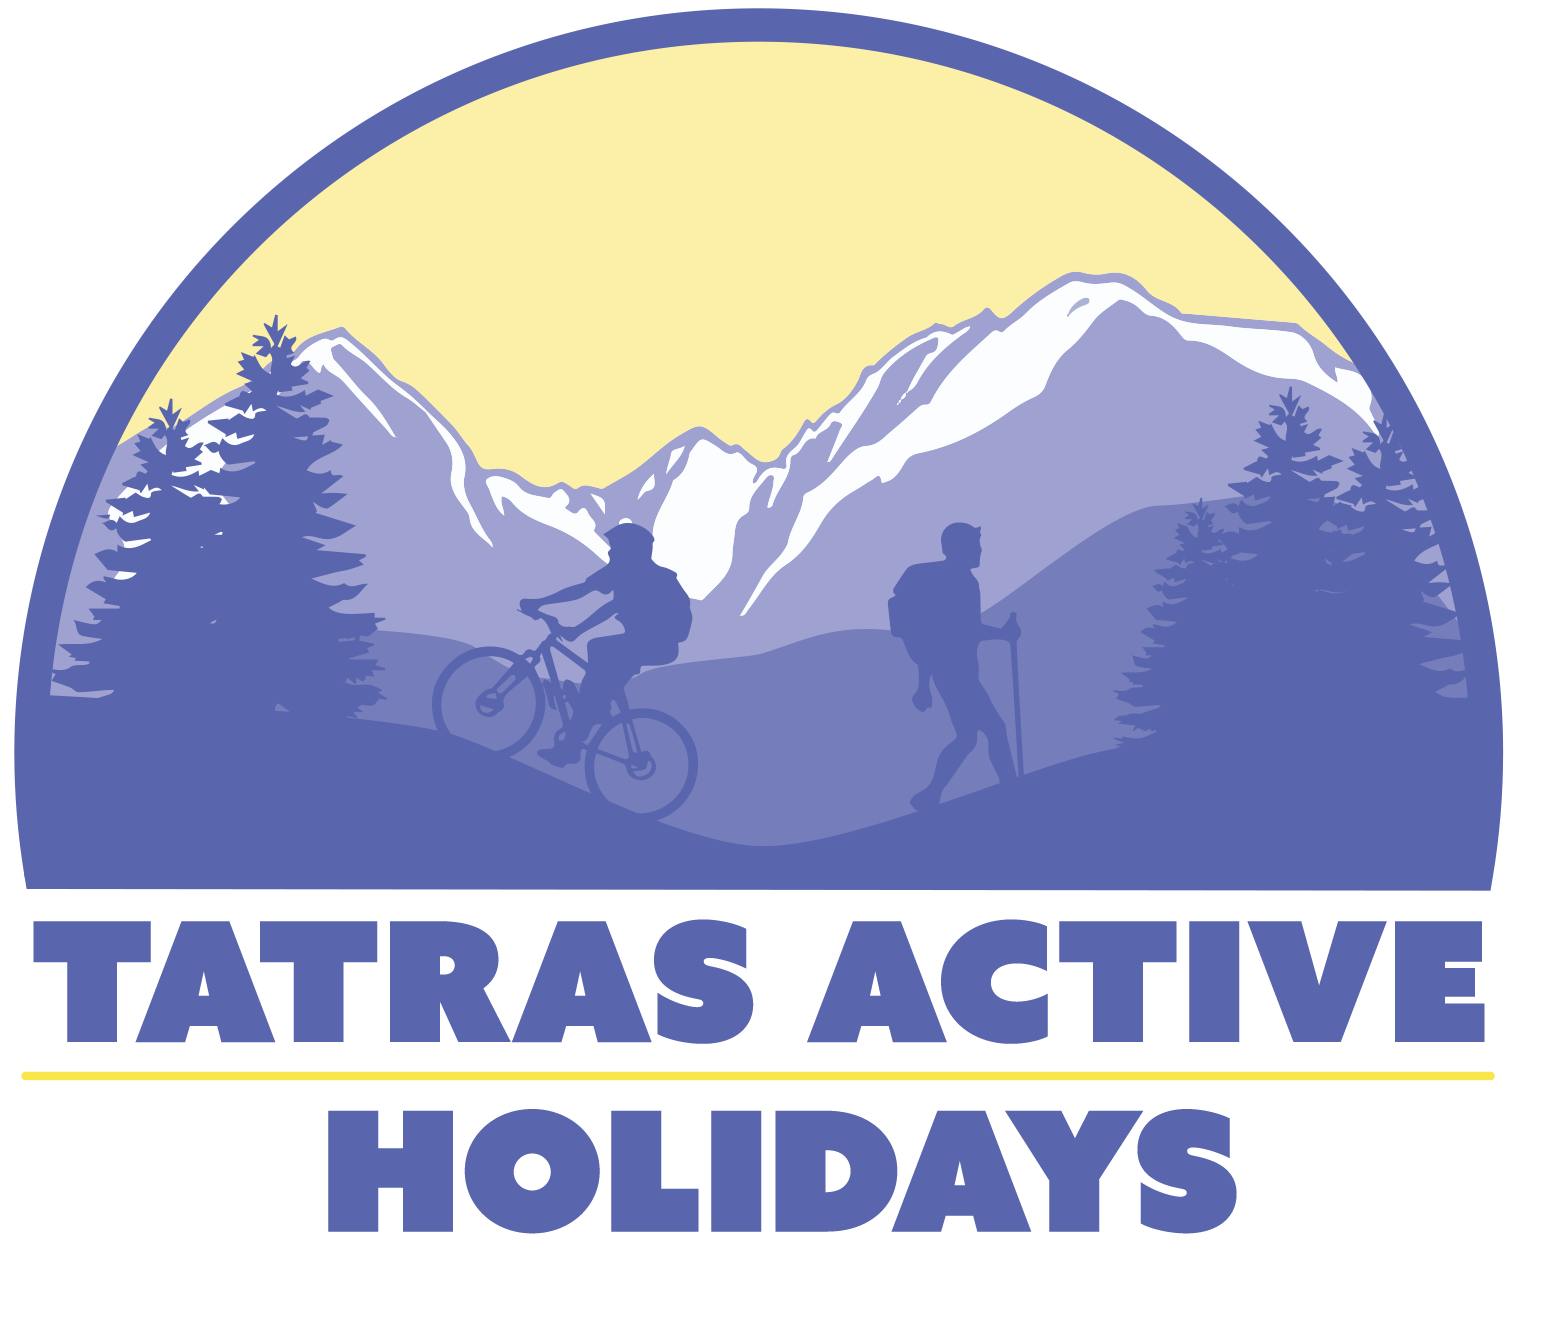 Tatras Active Holidays